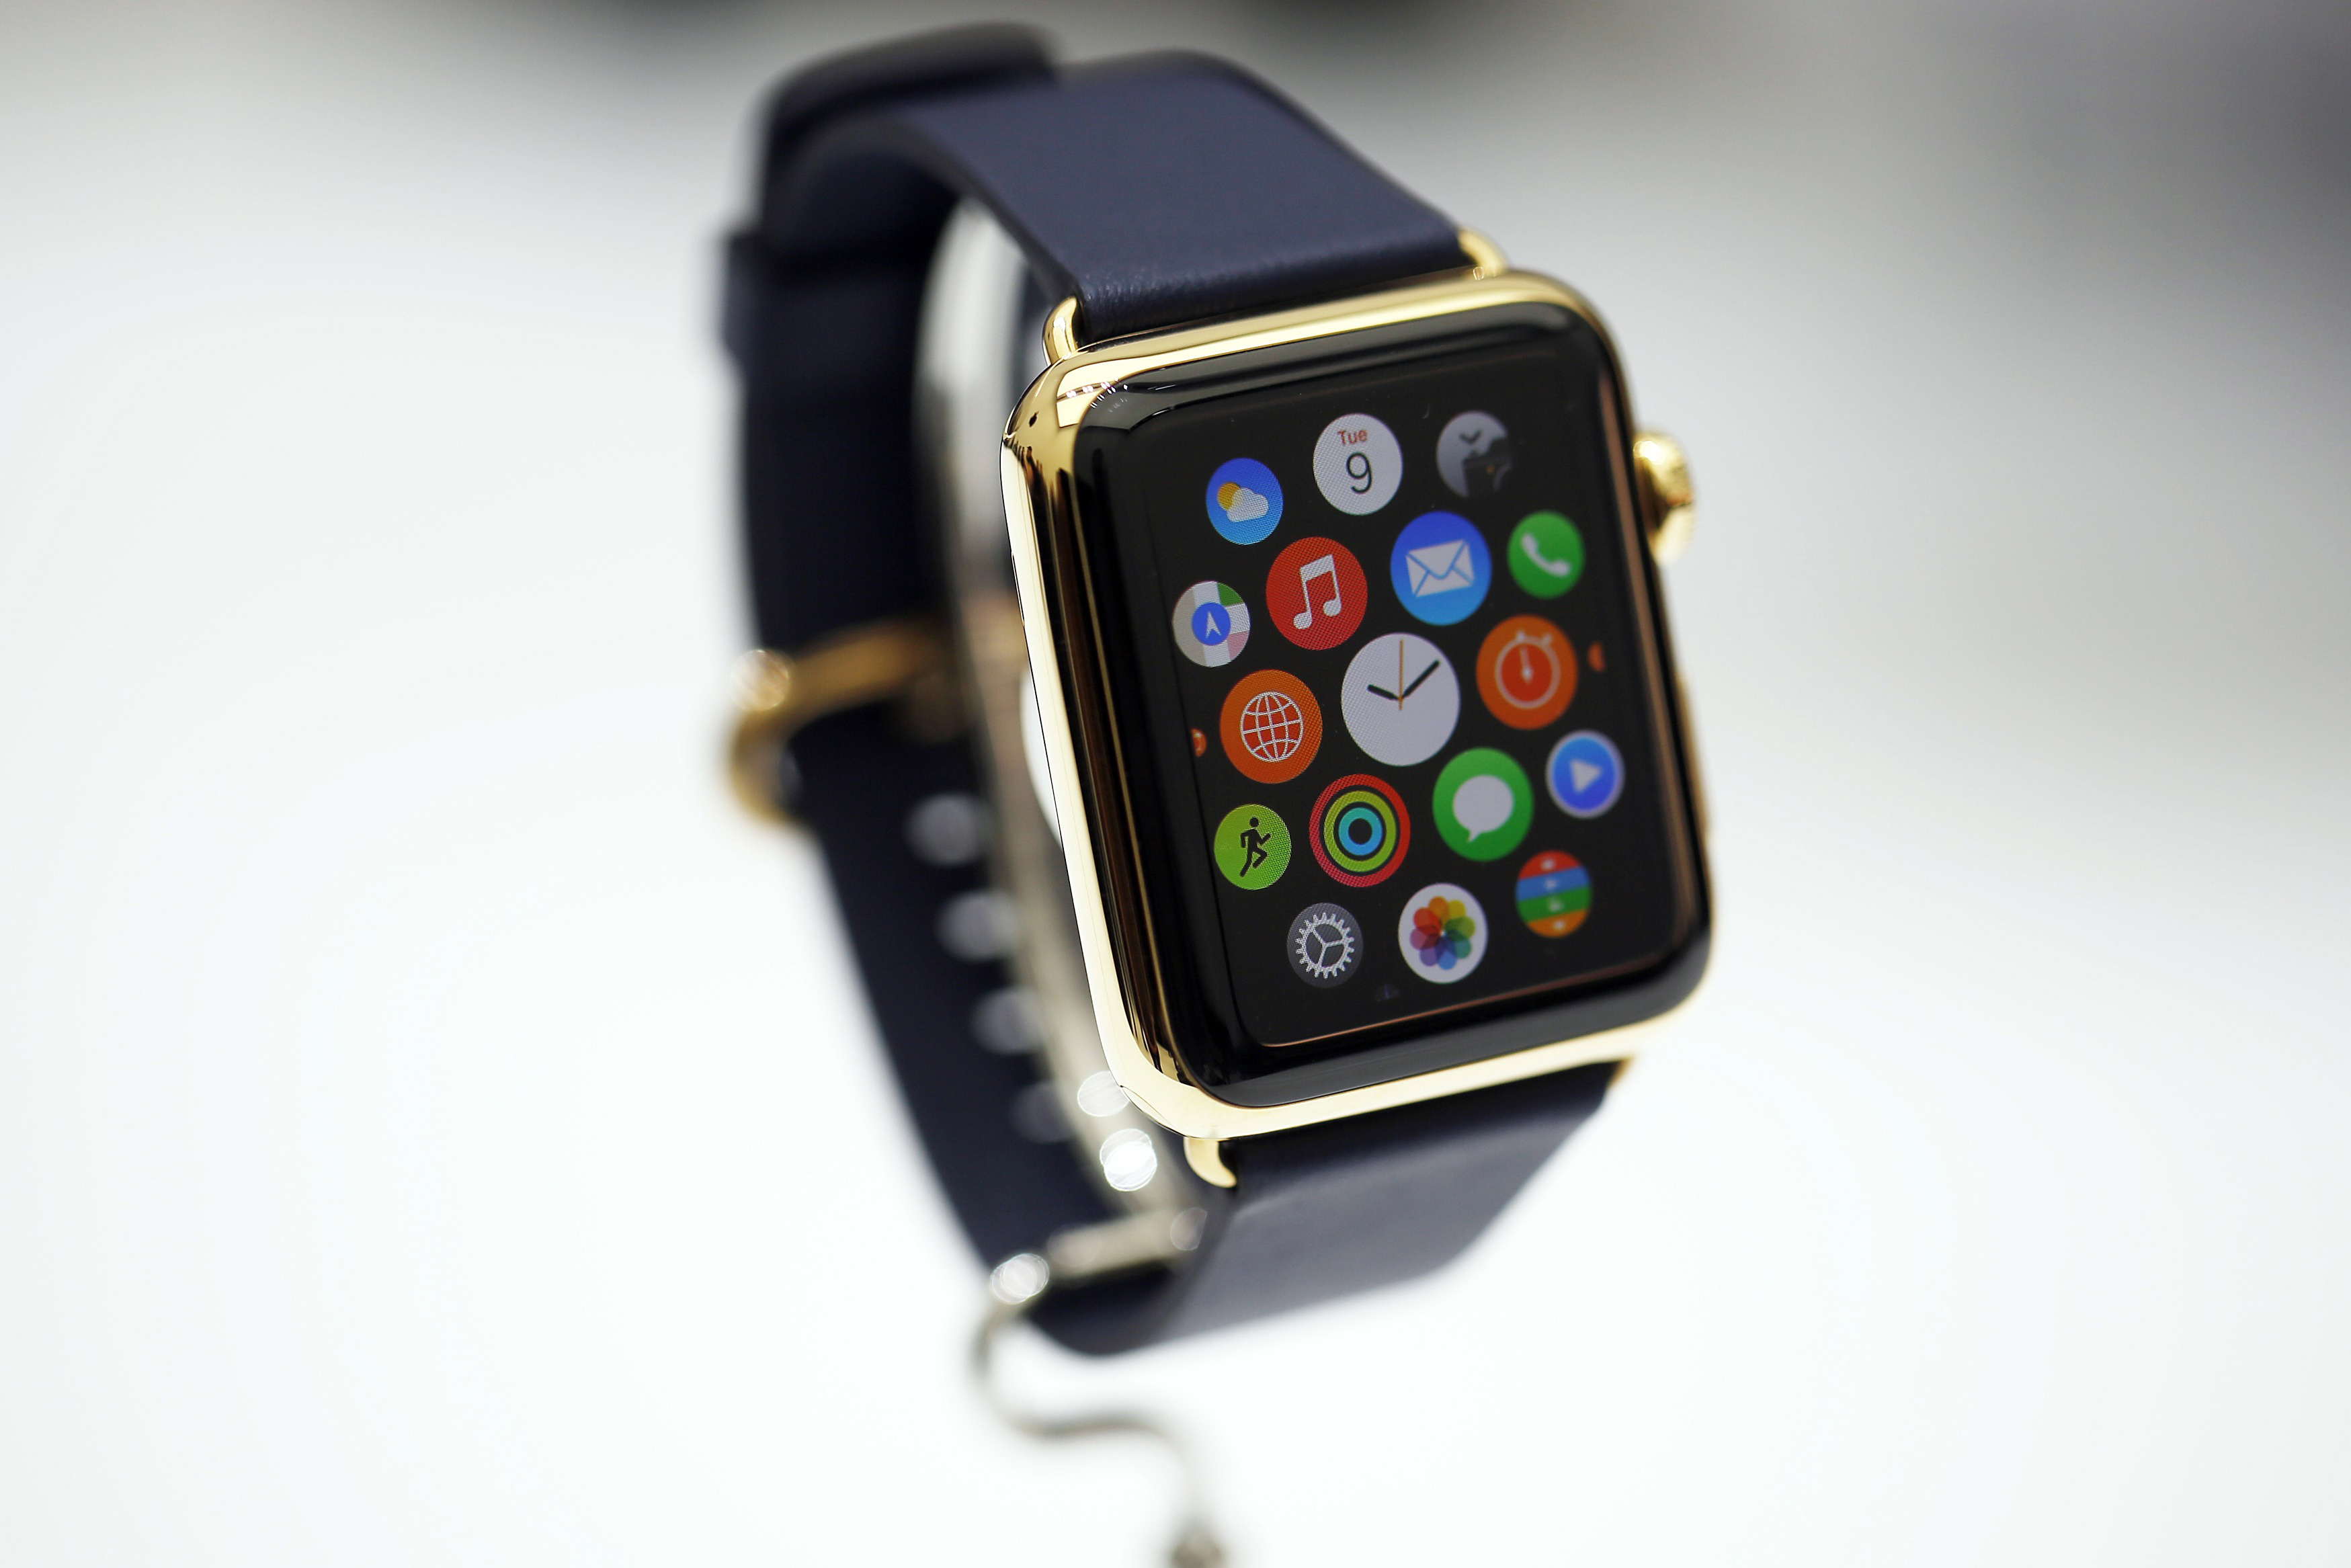 New Apple Watch is seen during an Apple event at the Flint Center in Cupertino